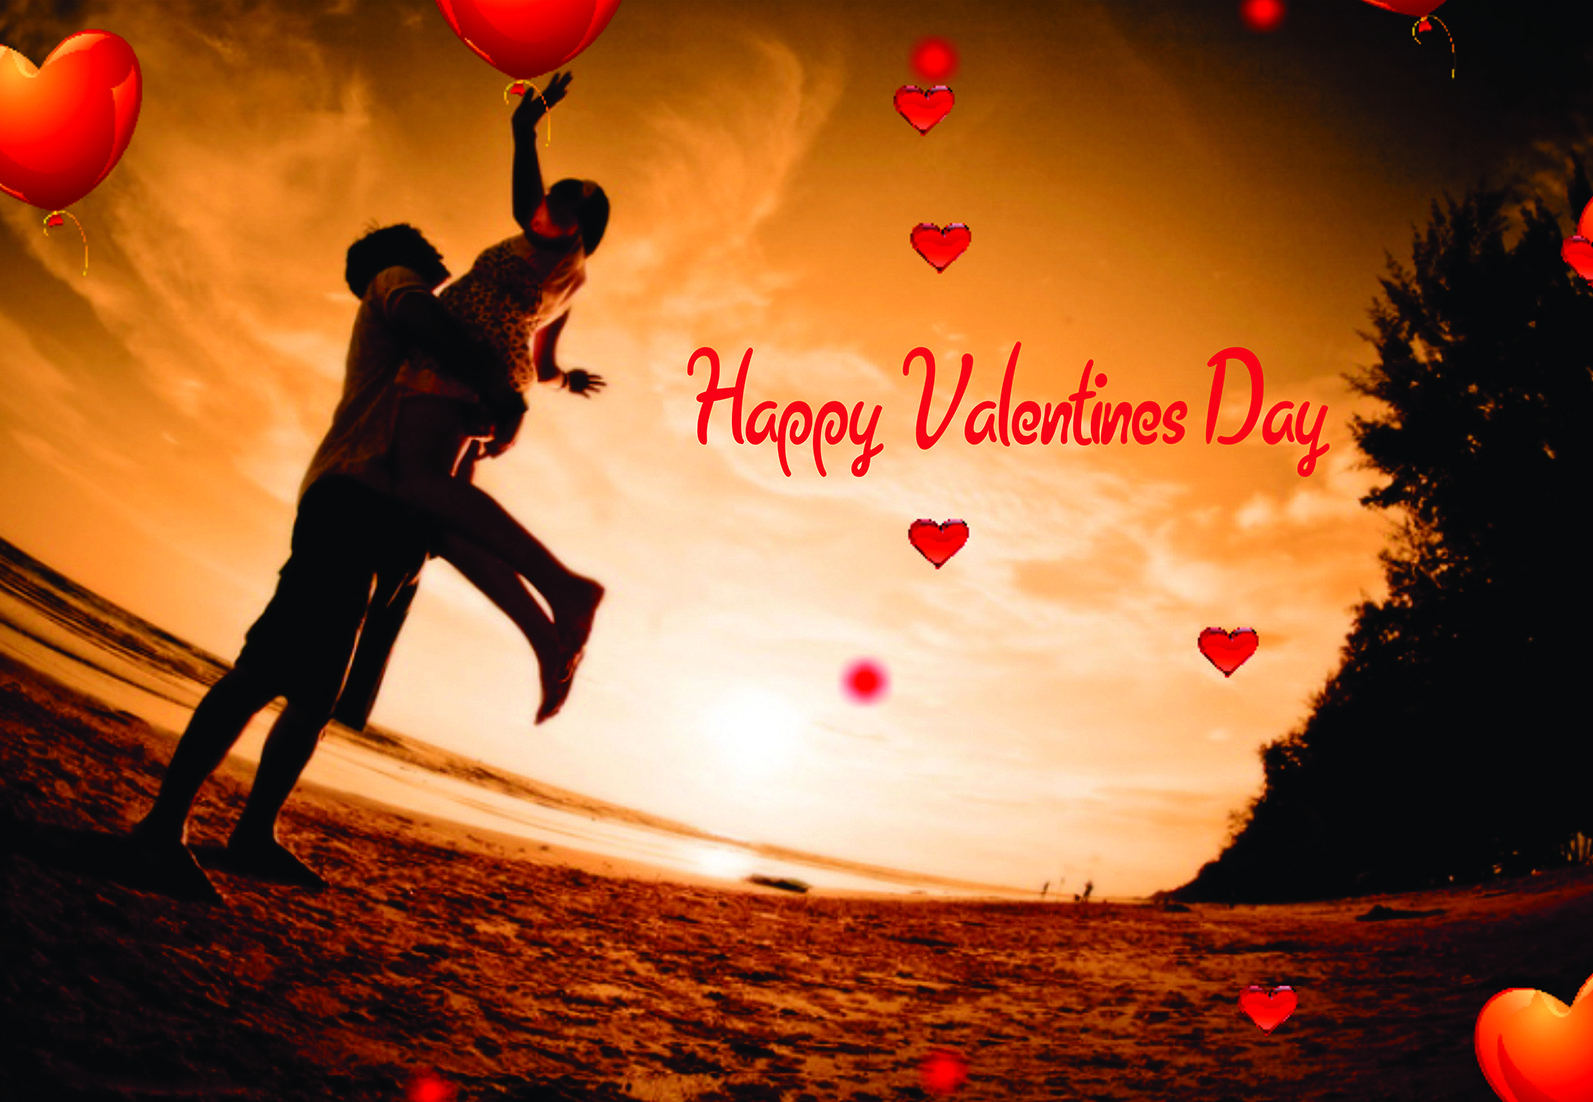 cute Love Wallpaper For Mobile Hd : Valentine s Day HD Wallpaper